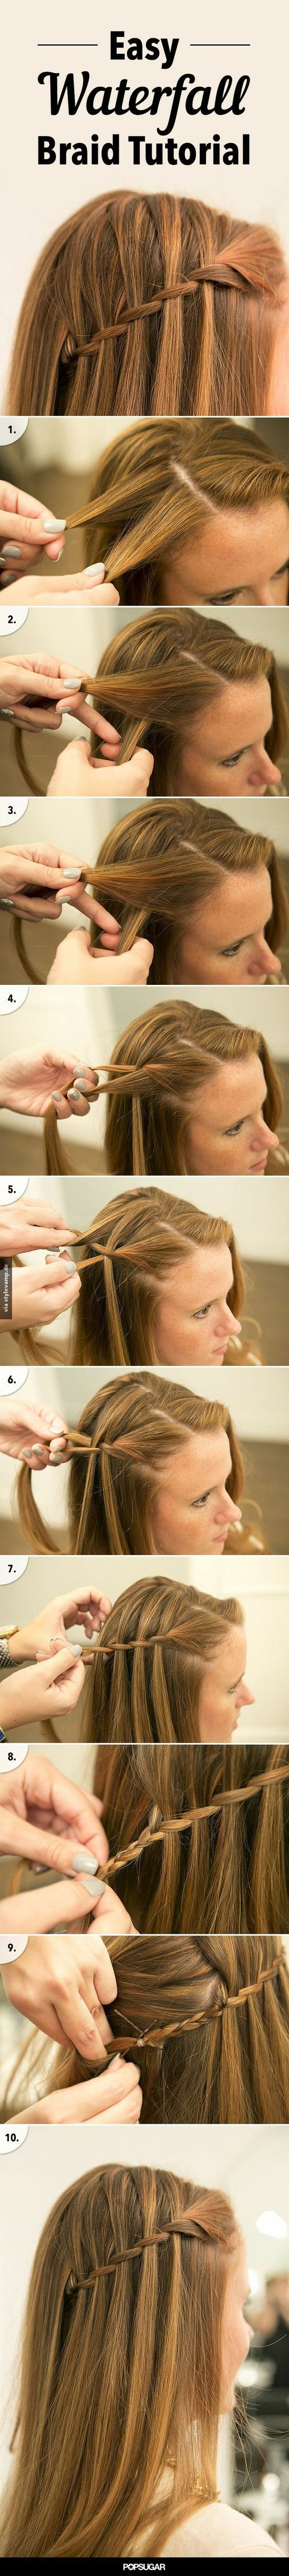 best images about hair on pinterest workout hairstyles best